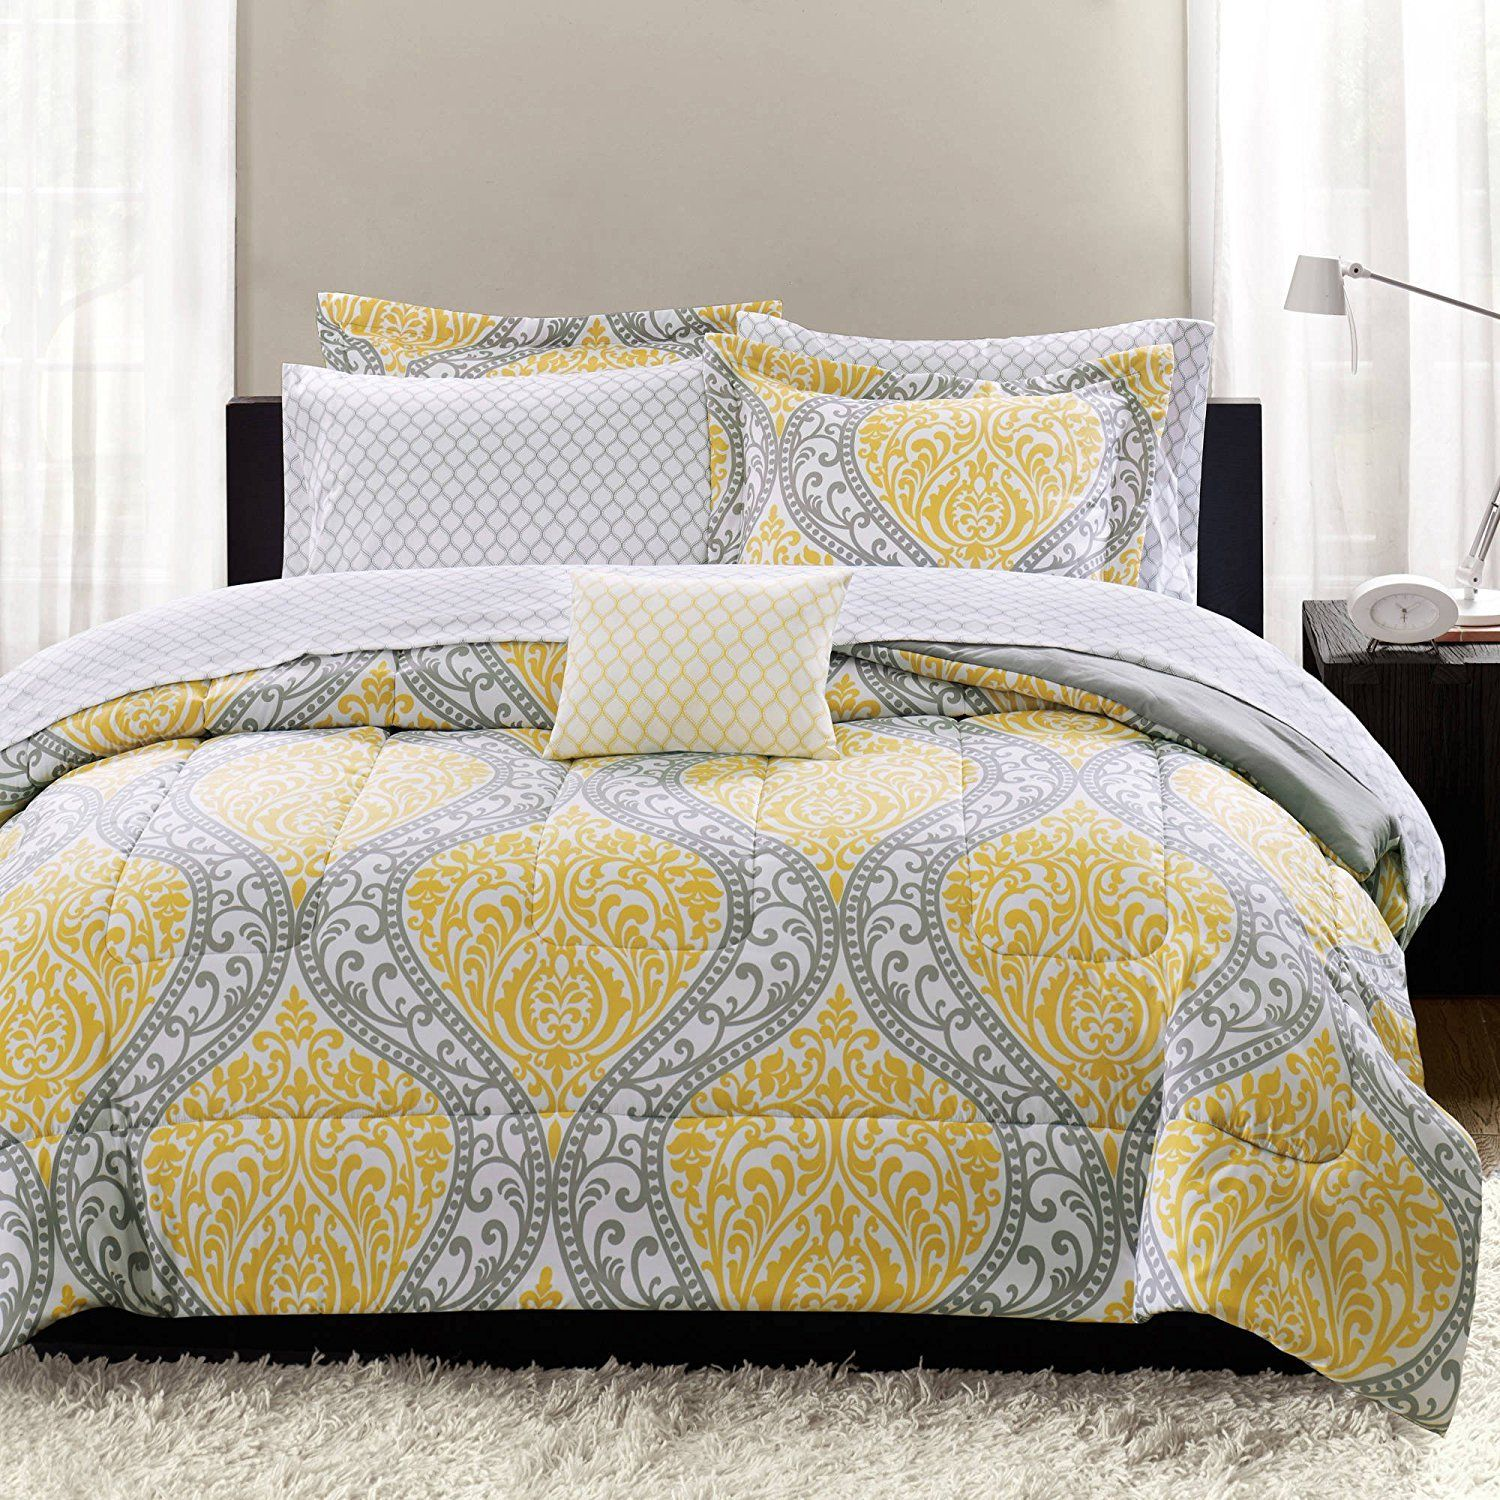 comforters blue set purple comforter white beds navy for grey twin brown queen bedding turquoise and bed size bedroom